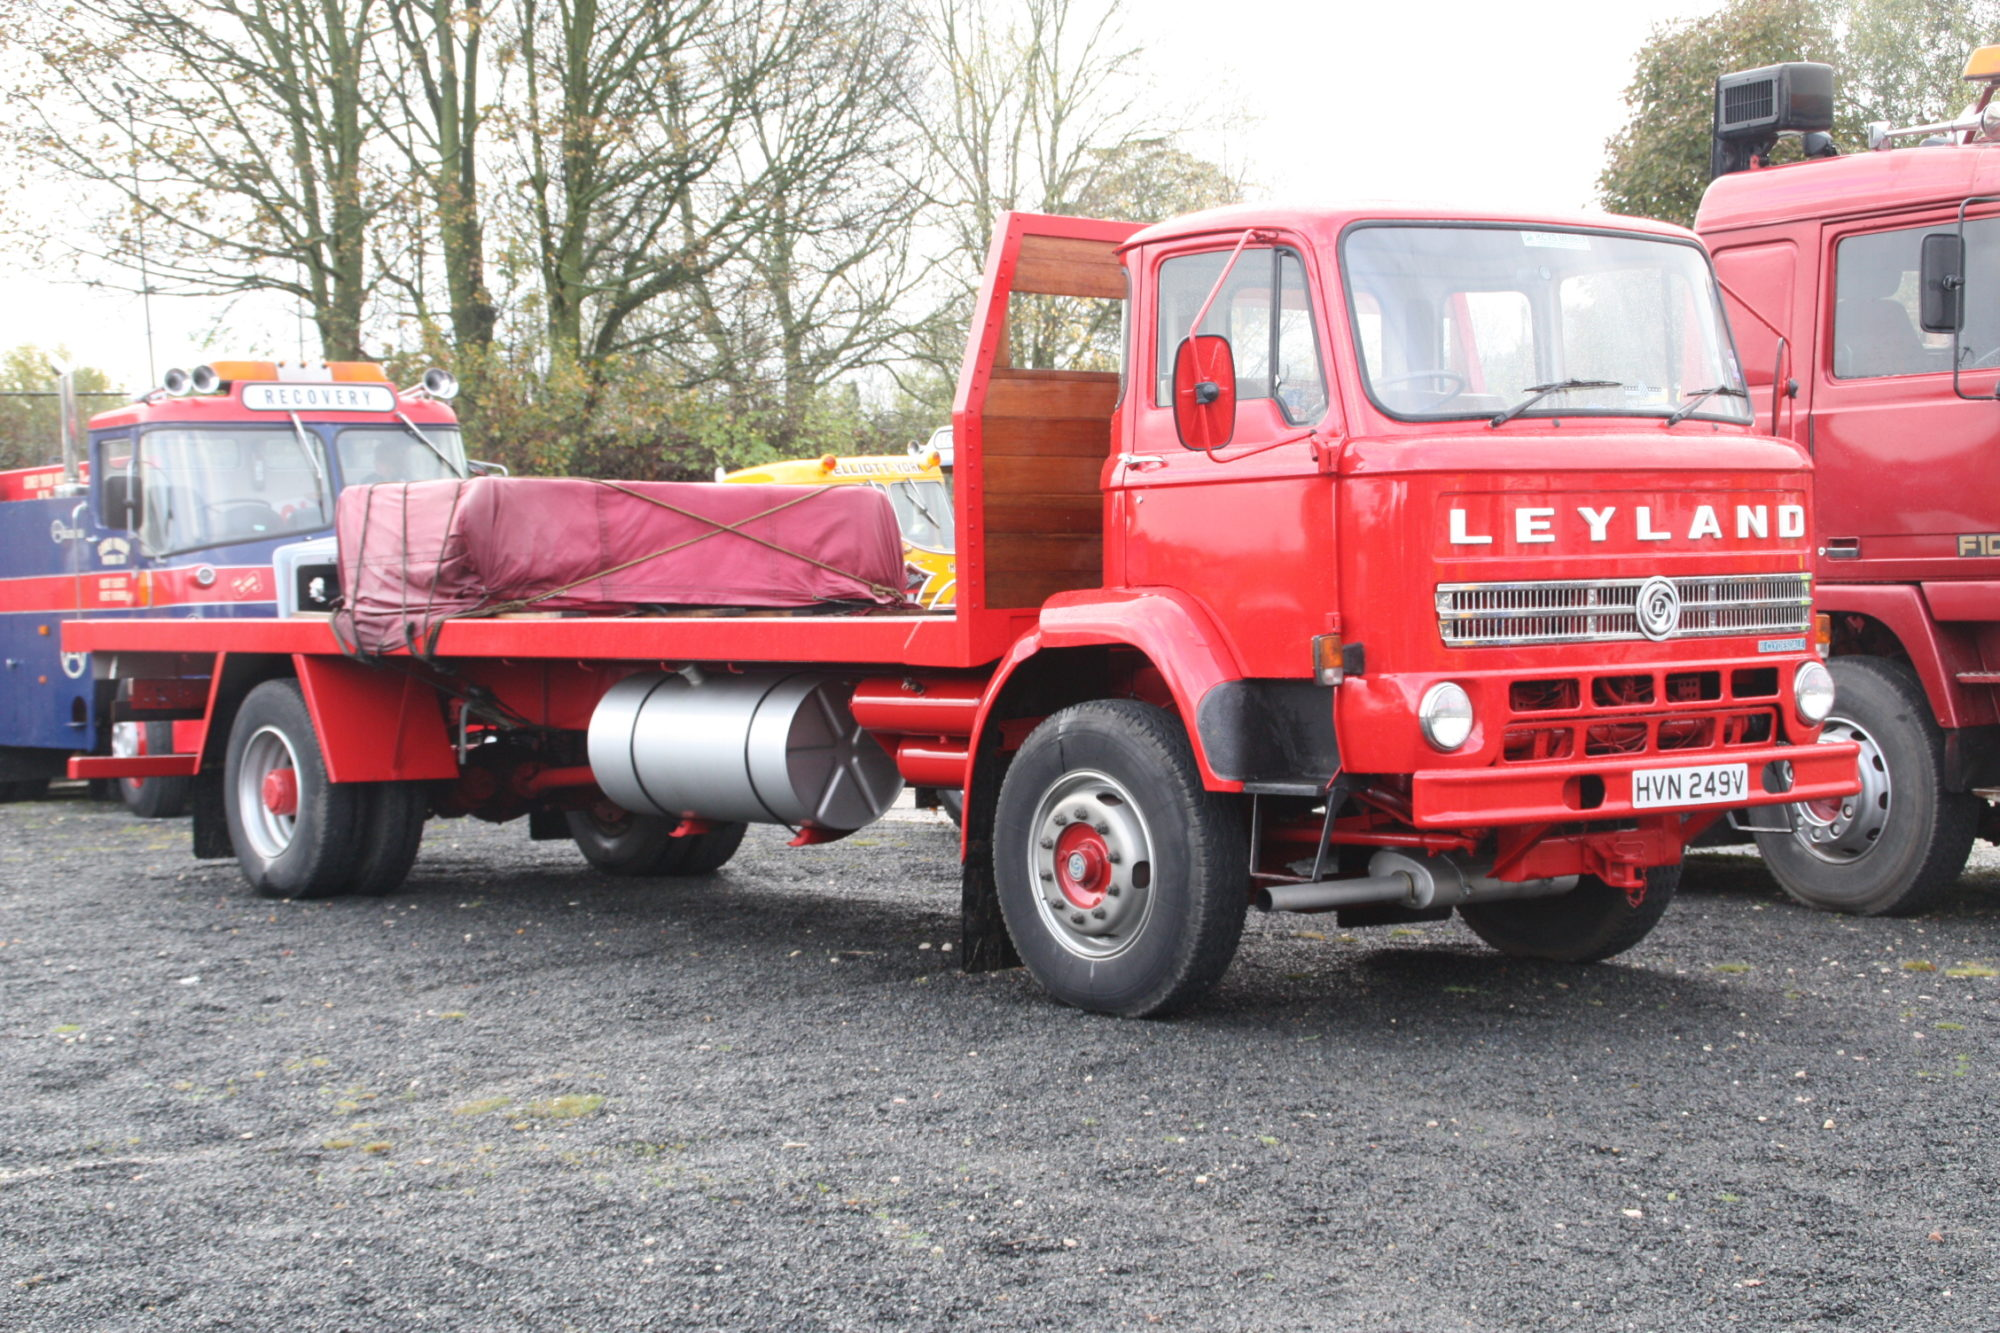 Leyland clydesdale